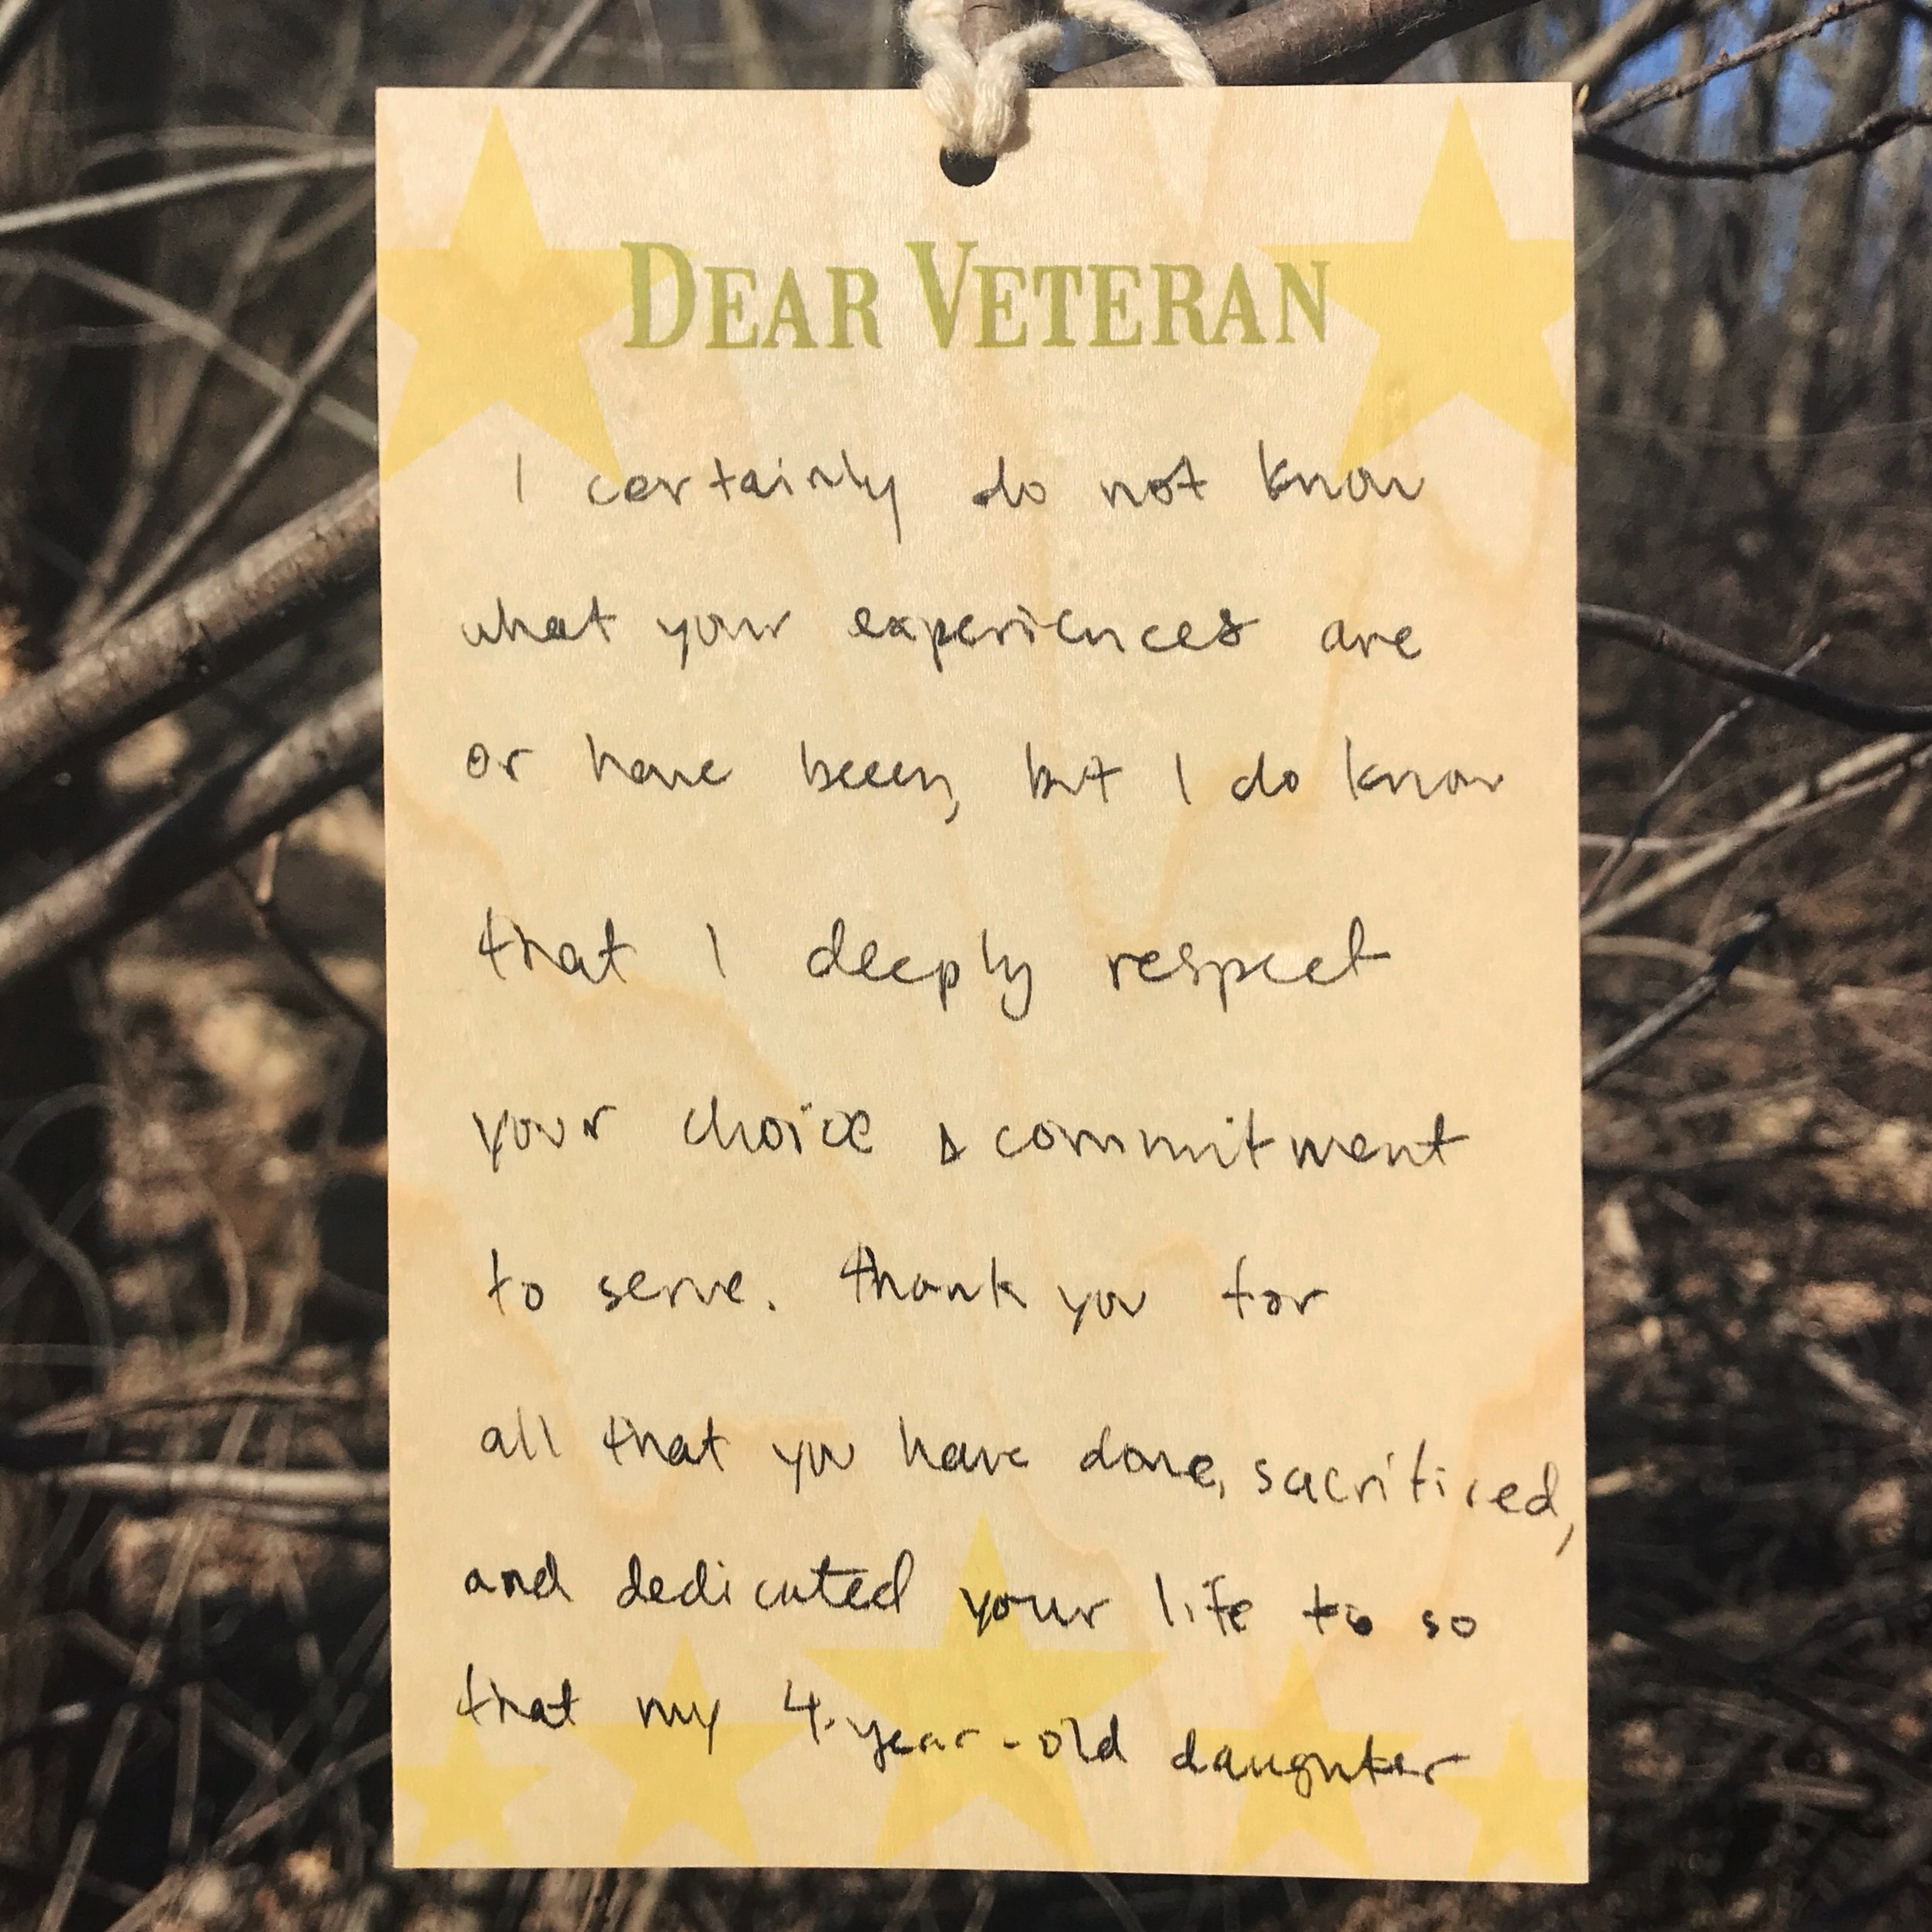 DearVeteran_DEC08_2017.JPG